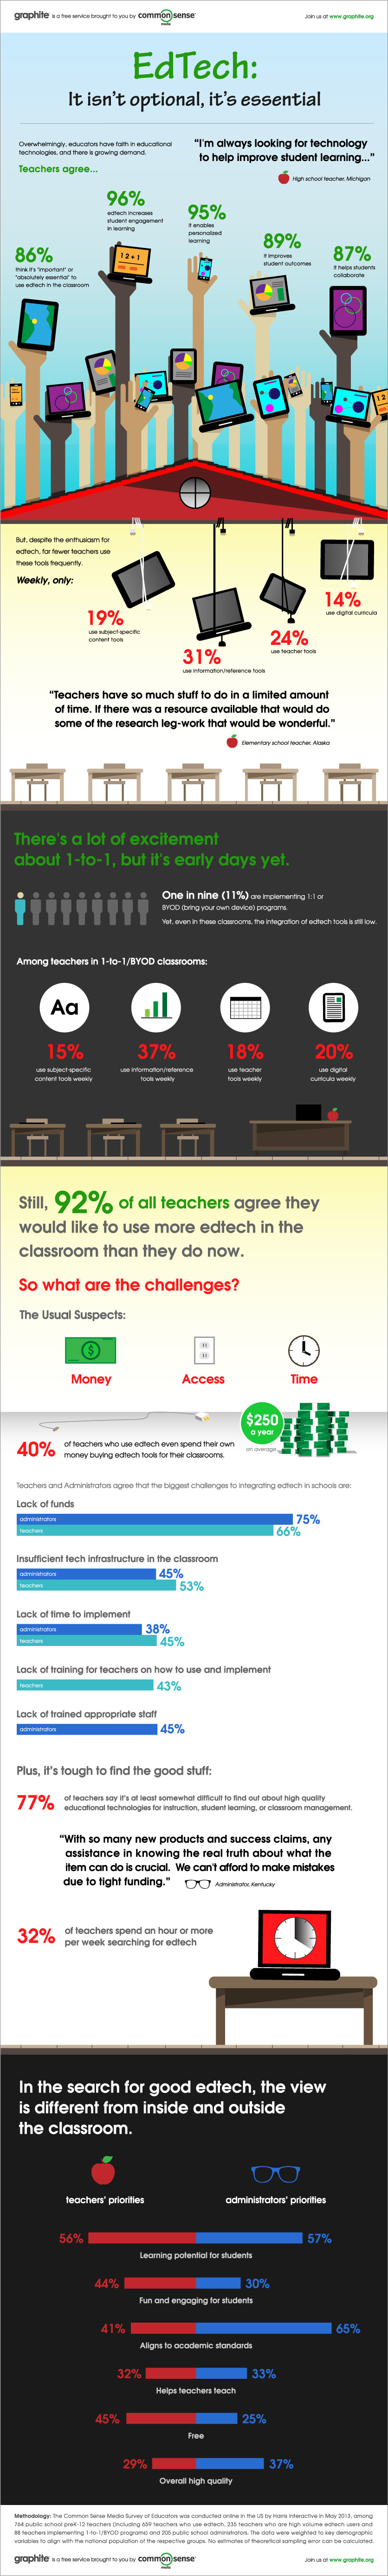 Infographic: An Increasing Demand for Classroom Technology